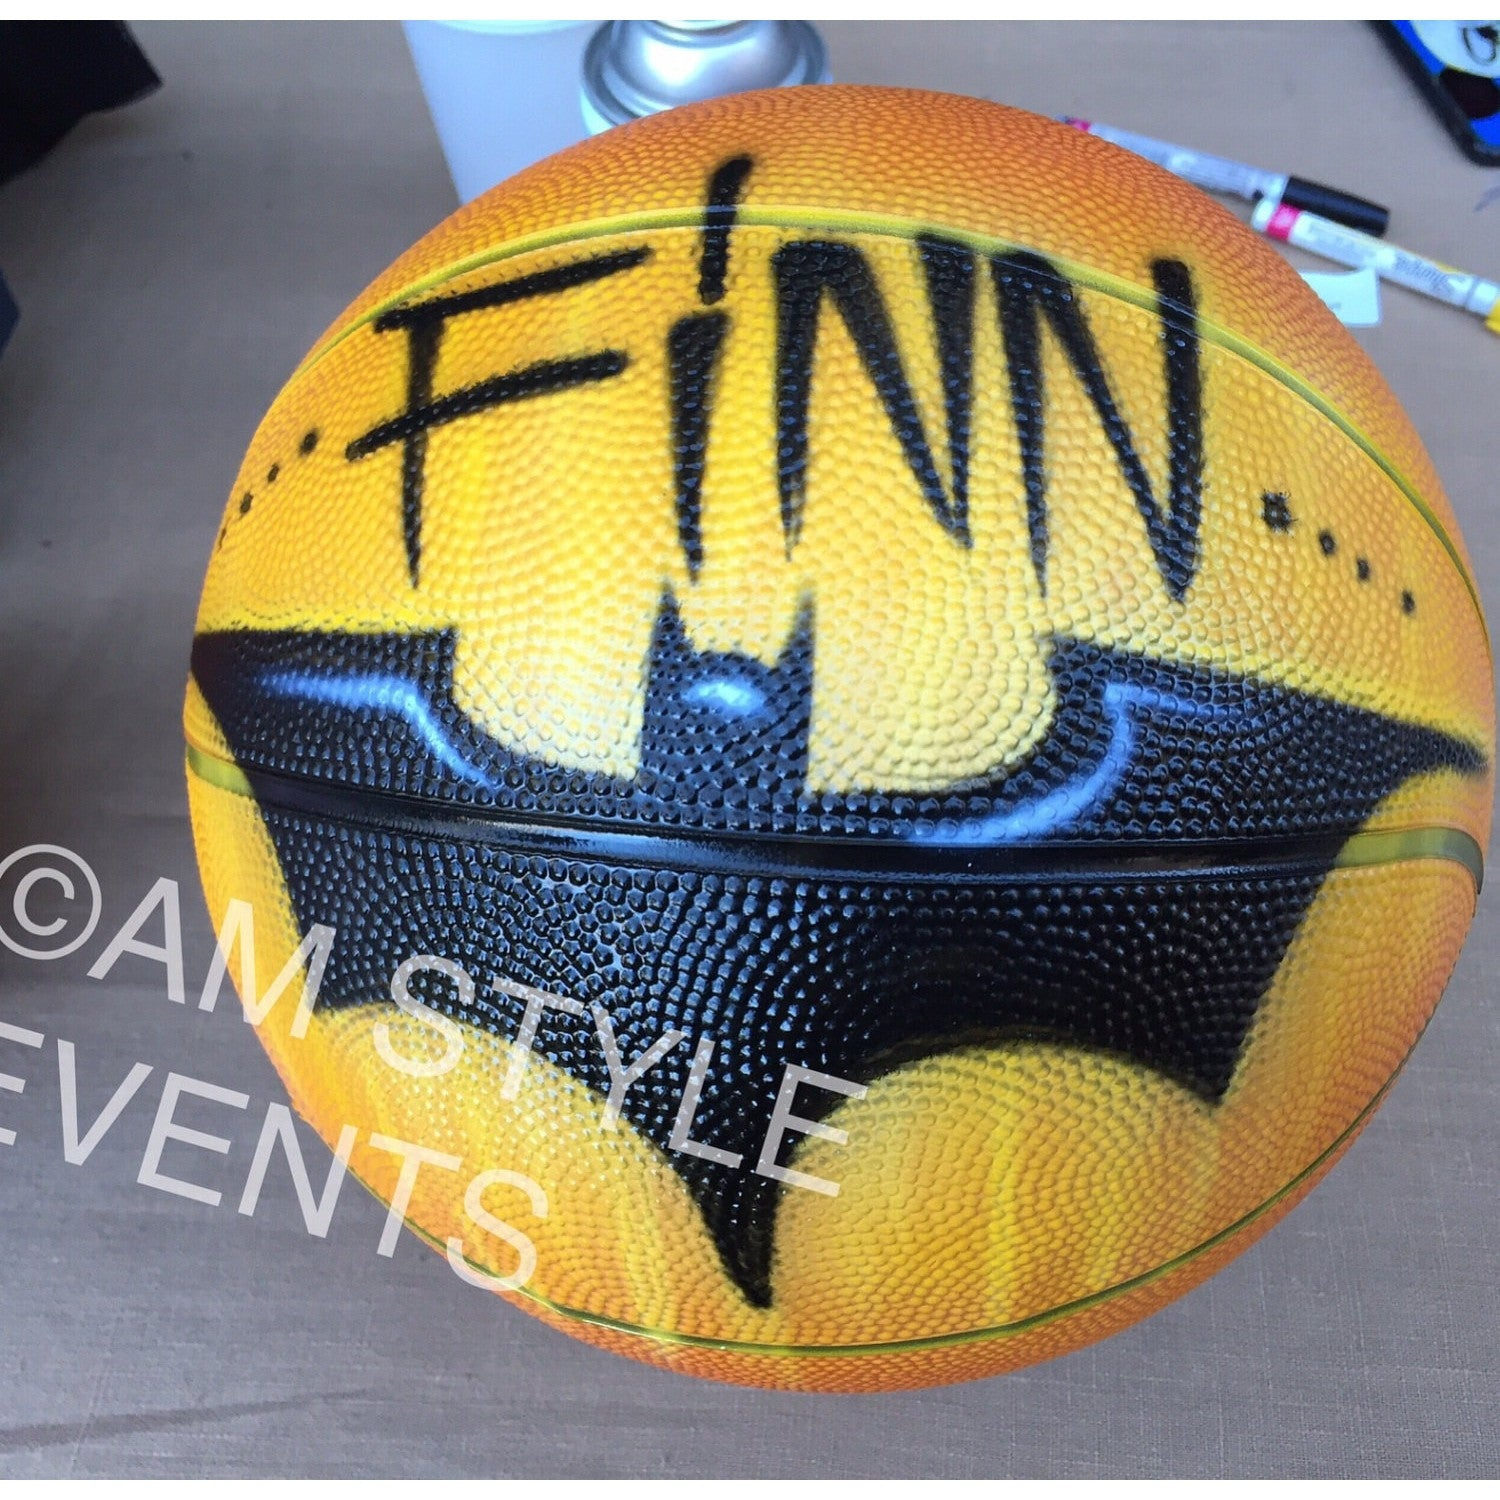 Airbrush Designs on Basketballs, Personalize with your name and character!